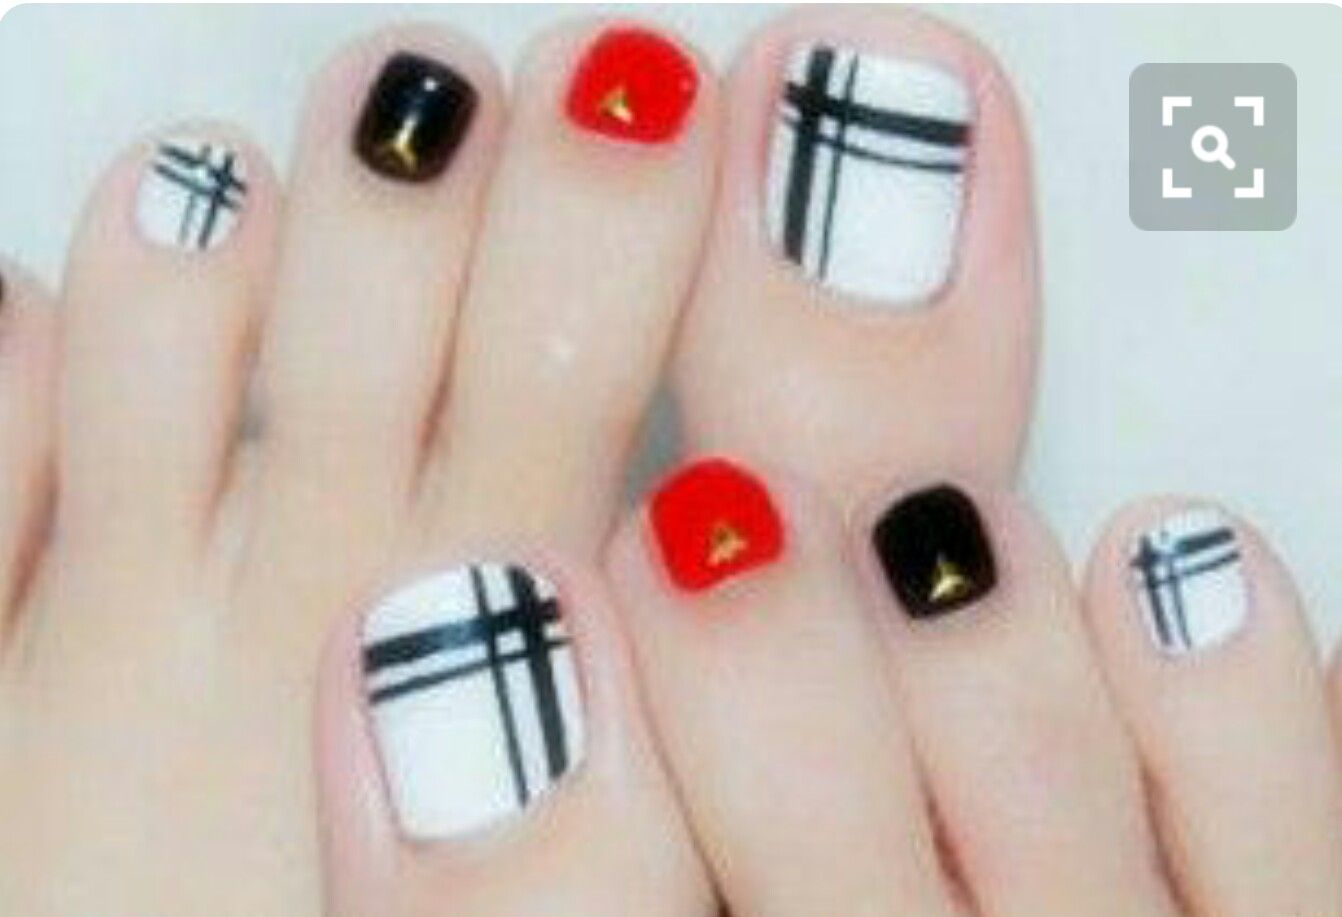 Pin By Charlene Mckay On Toes Pinterest Pedicure Nail Art